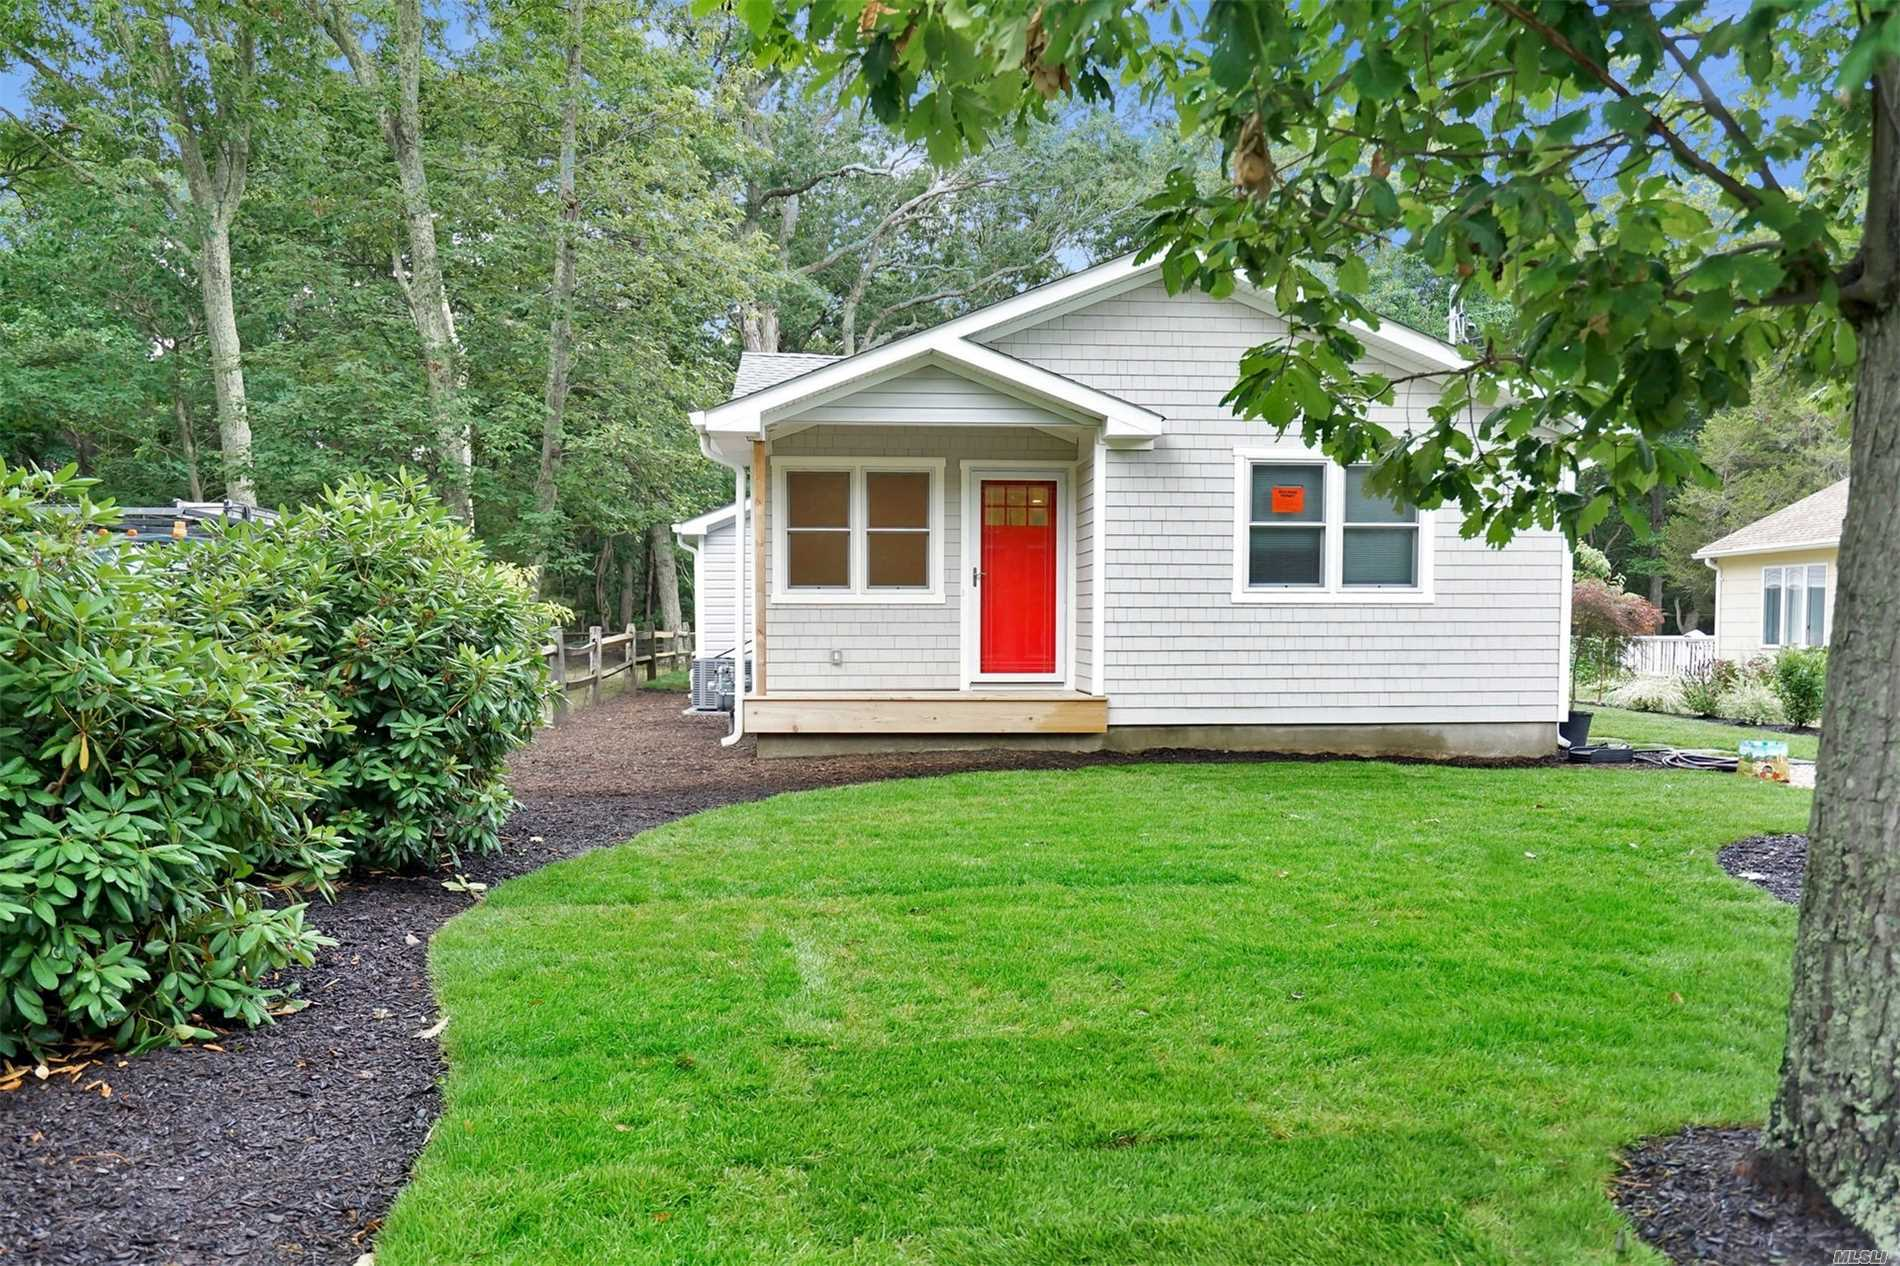 Completely Renovated 3 Bedroom Ranch With Beautiful Eat-In Kitchen And Open Floor Plan. All New Appliances, New Hardwood Floors, And New Baths. Just Steps From The Beach And Close To Shopping, Jitney And Love Lane. Enjoy All The North Fork Amenities From This Exquisite Year Round Rental.